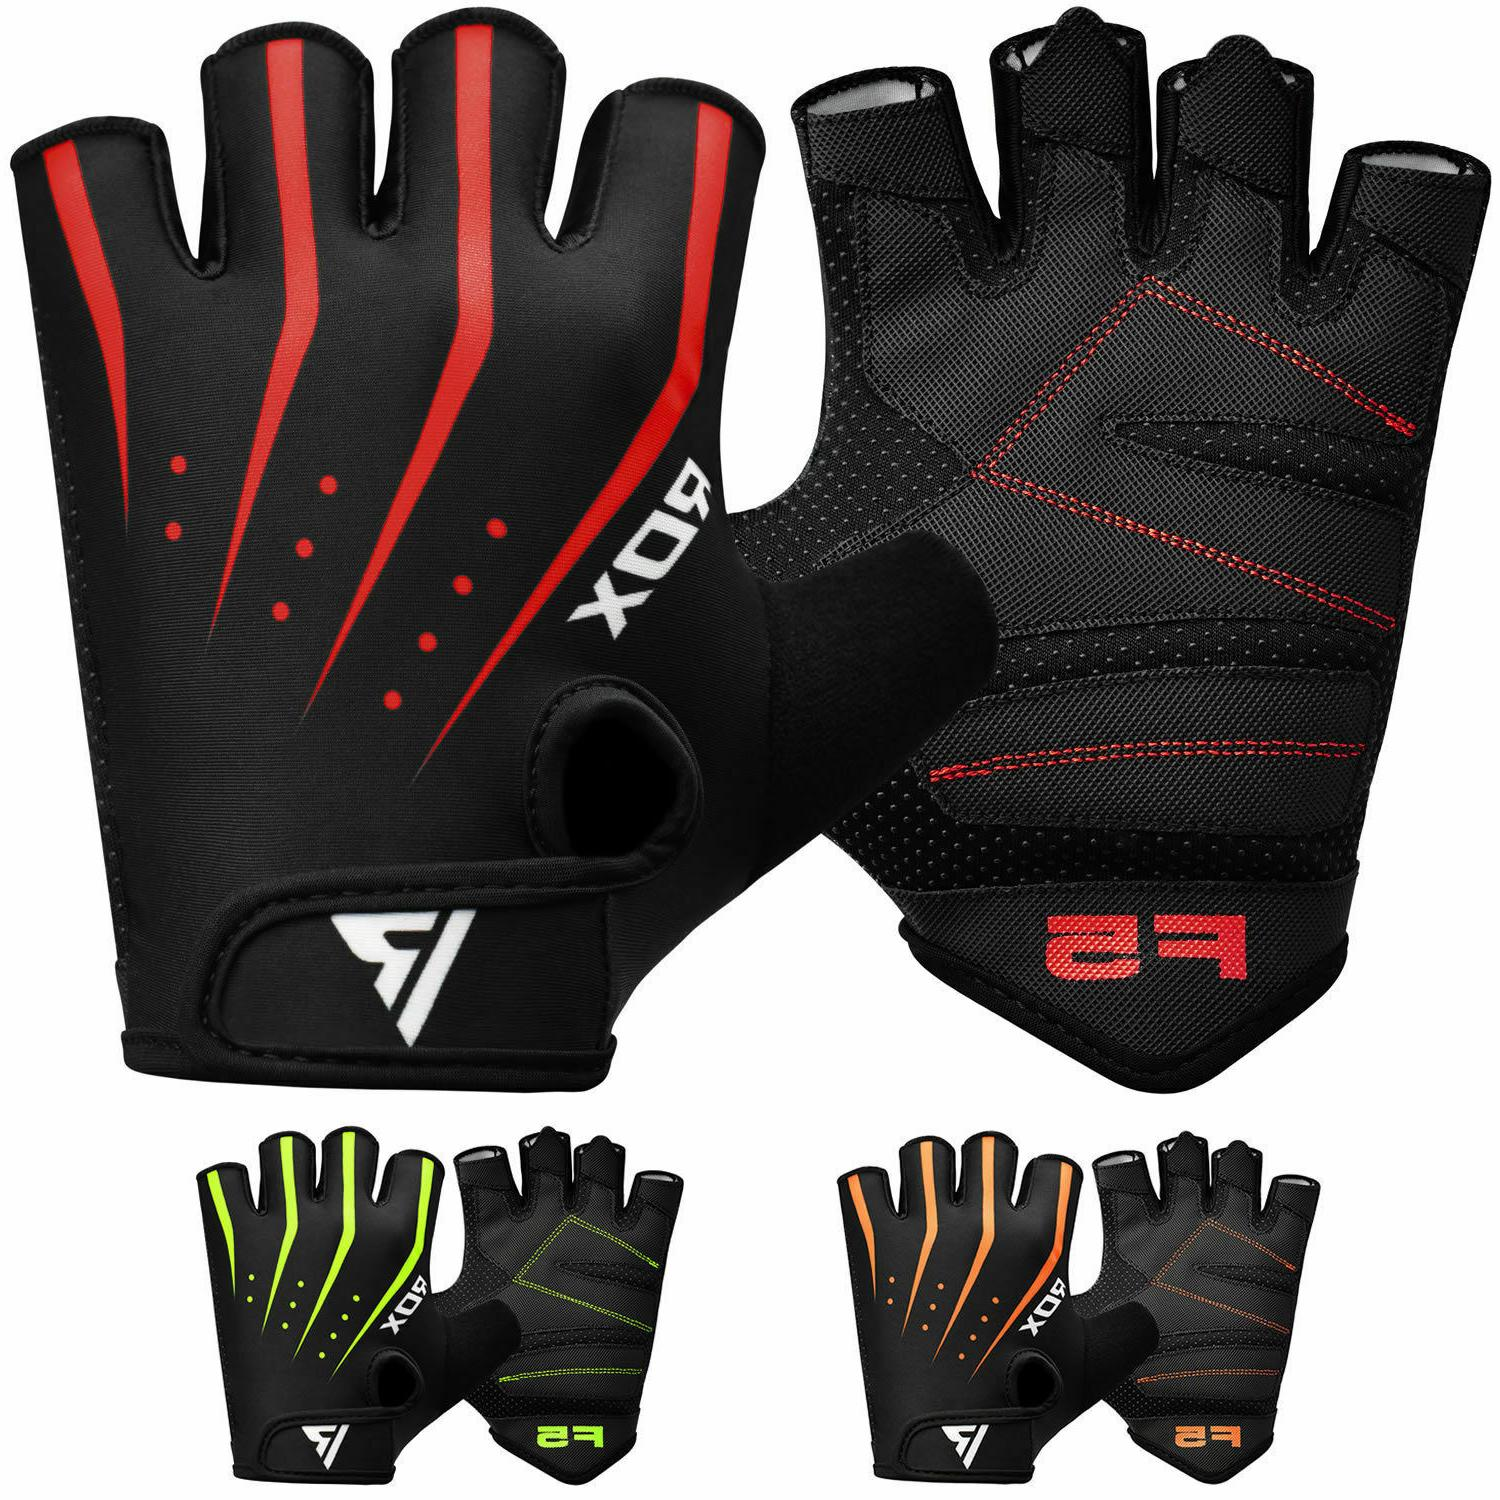 RDX Weight Lifting Gloves Wrist Straps Gym Power Support Training Grip